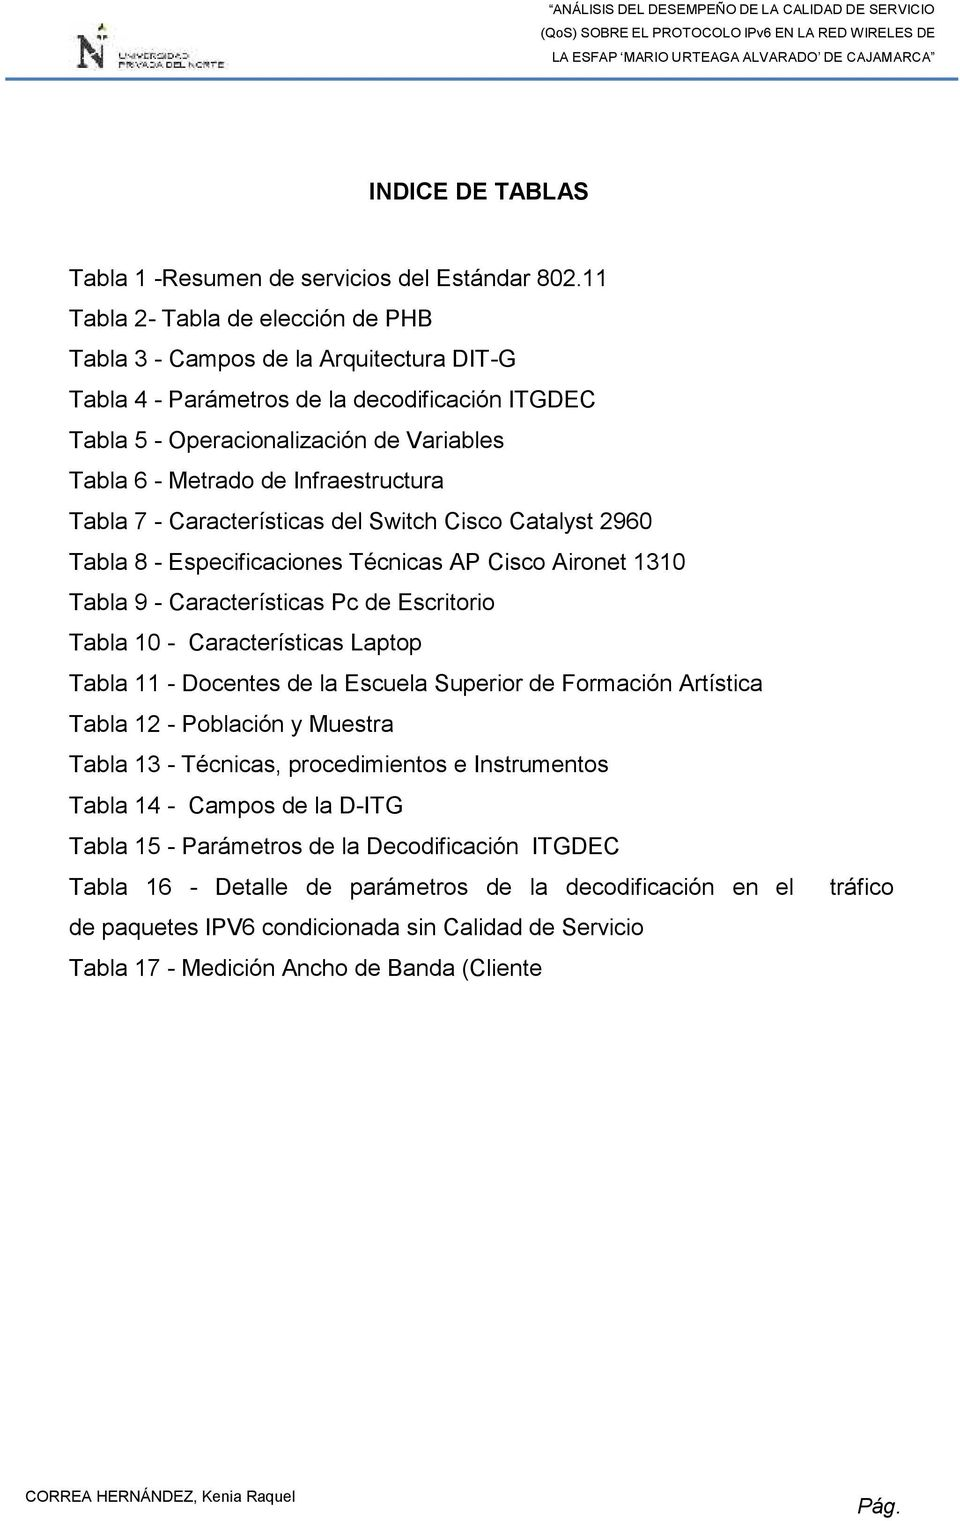 Infraestructura Tabla 7 - Características del Switch Cisco Catalyst 2960 Tabla 8 - Especificaciones Técnicas AP Cisco Aironet 1310 Tabla 9 - Características Pc de Escritorio Tabla 10 -